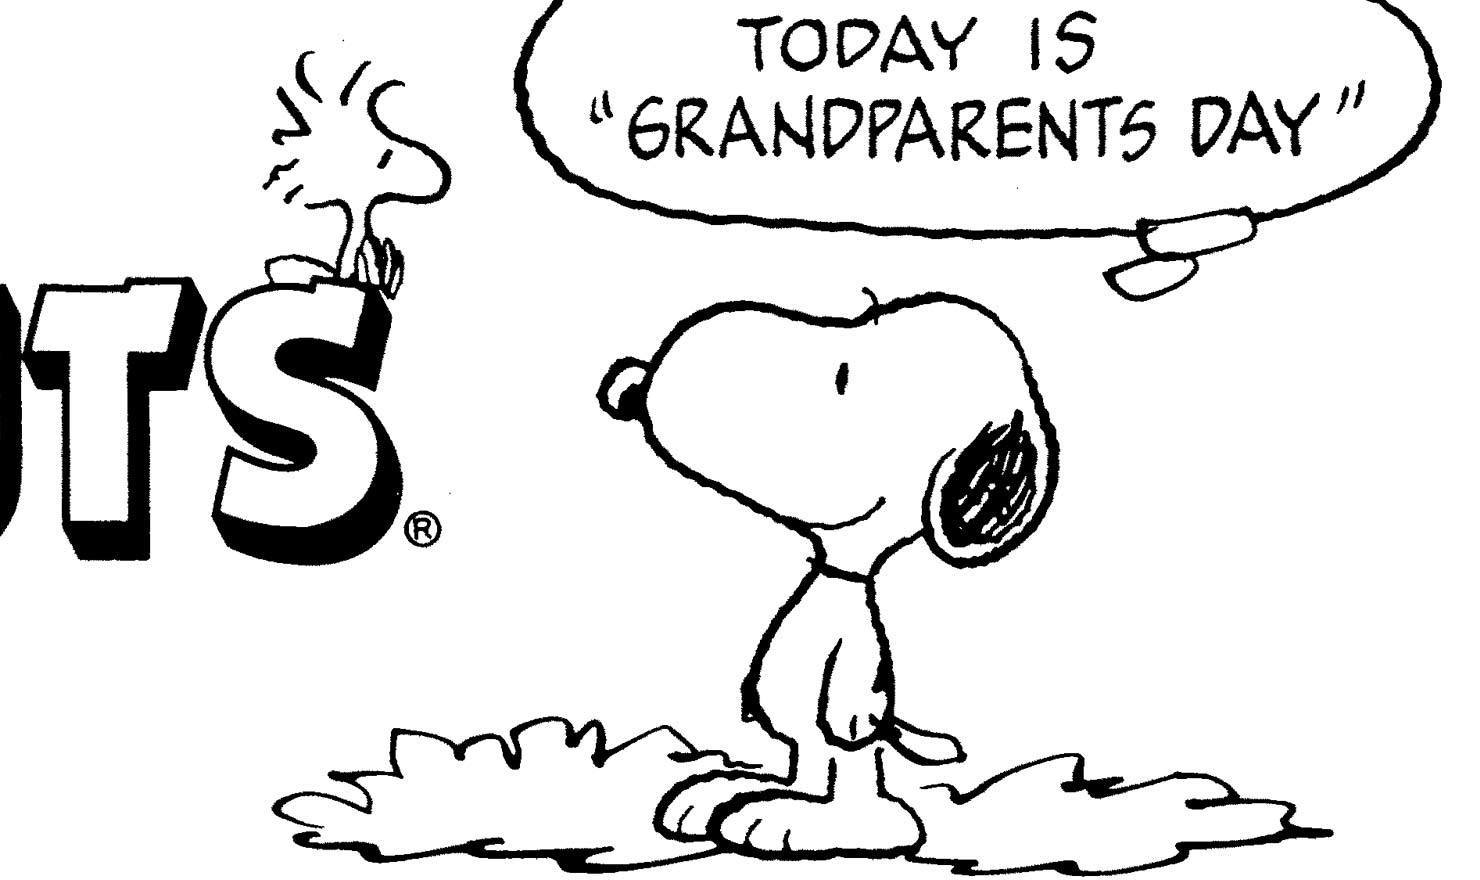 These Grandparents Day Comics Will Remind You To Give Yours A Call